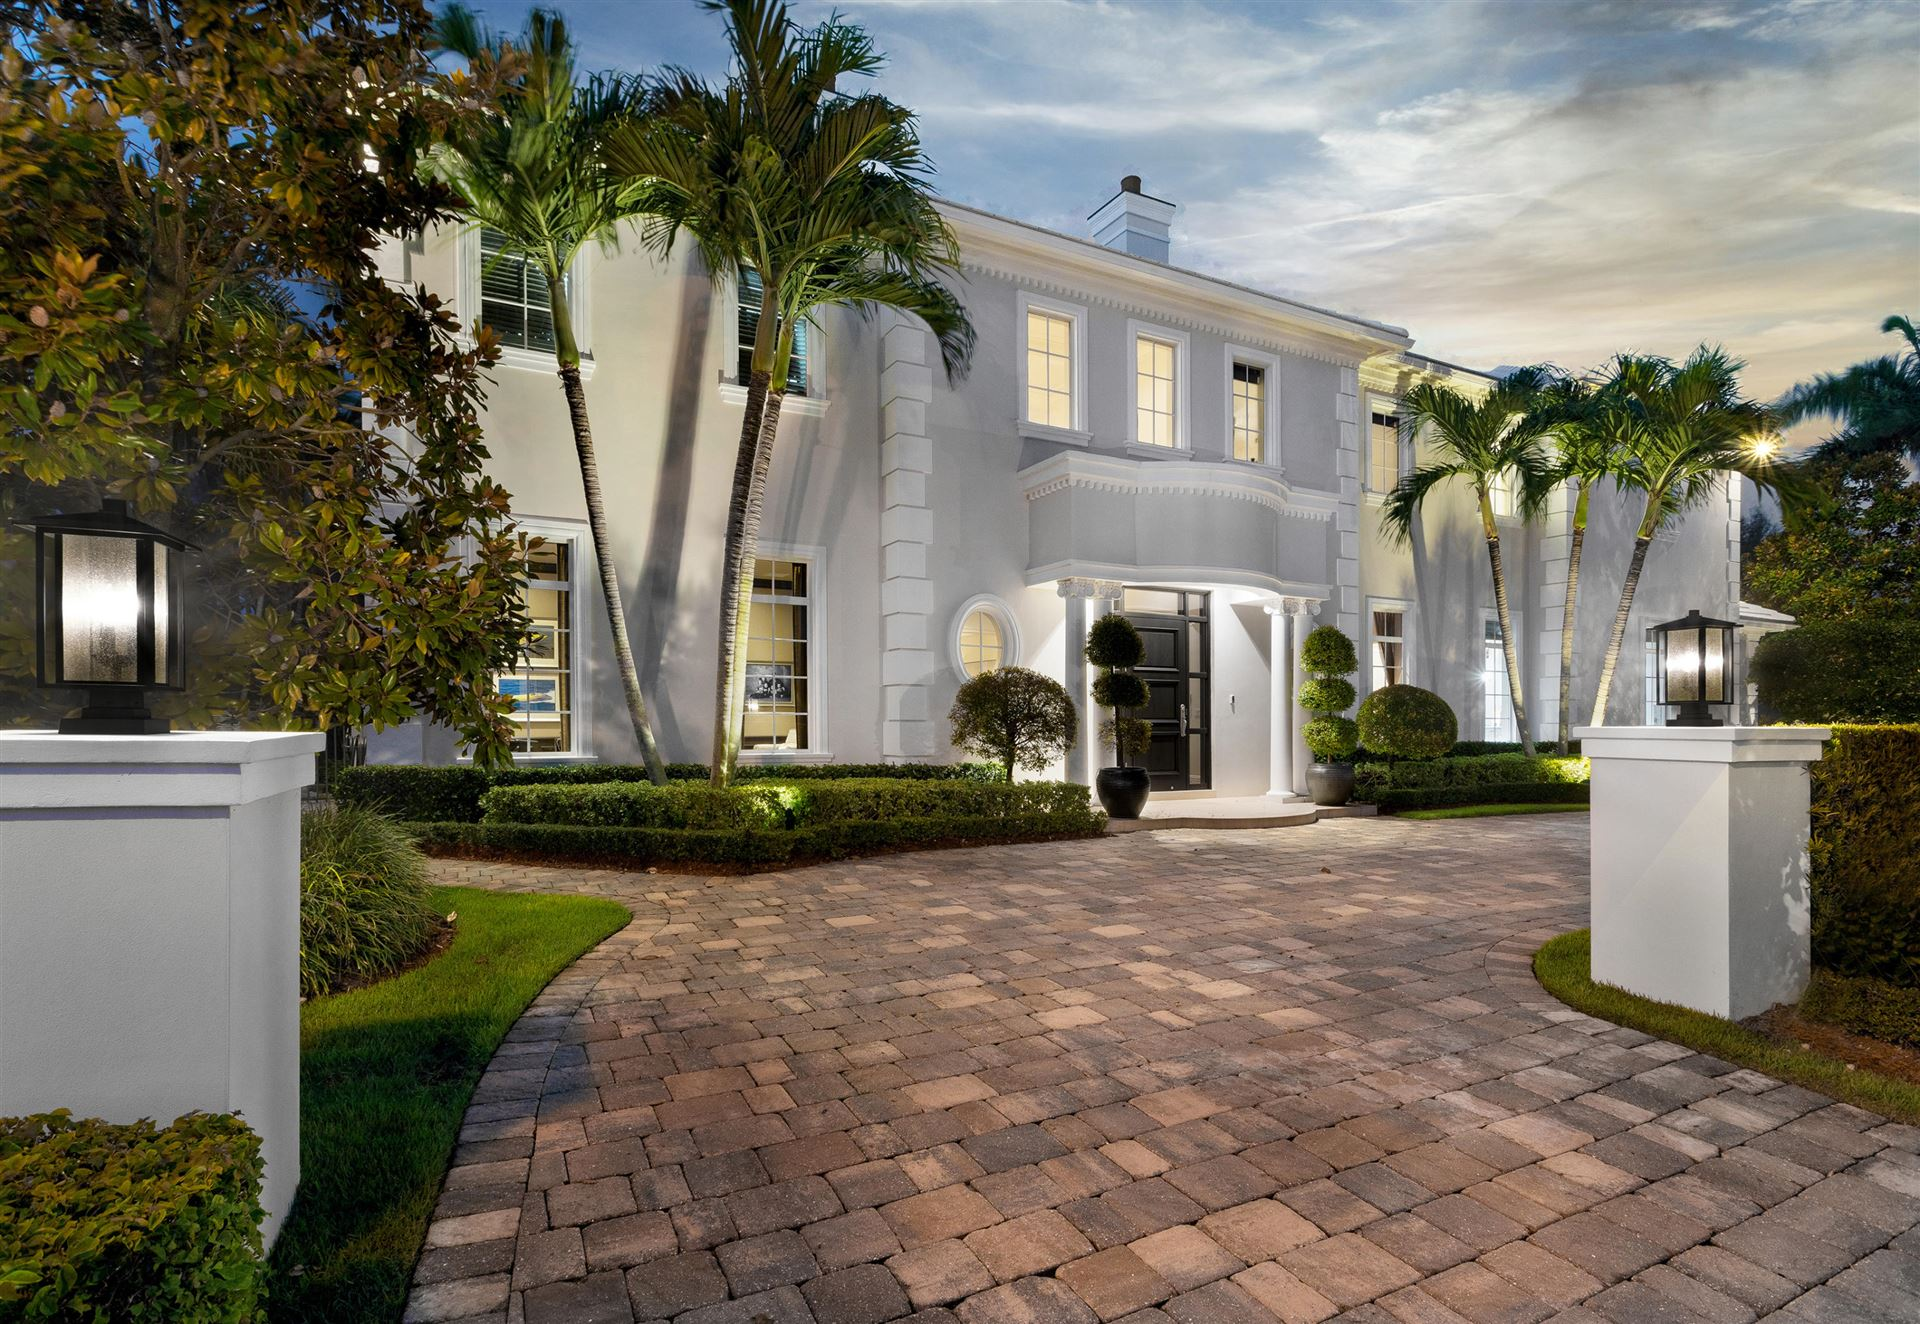 366 Royal Palm Way, Boca Raton, FL 33432 - MLS#: RX-10647870